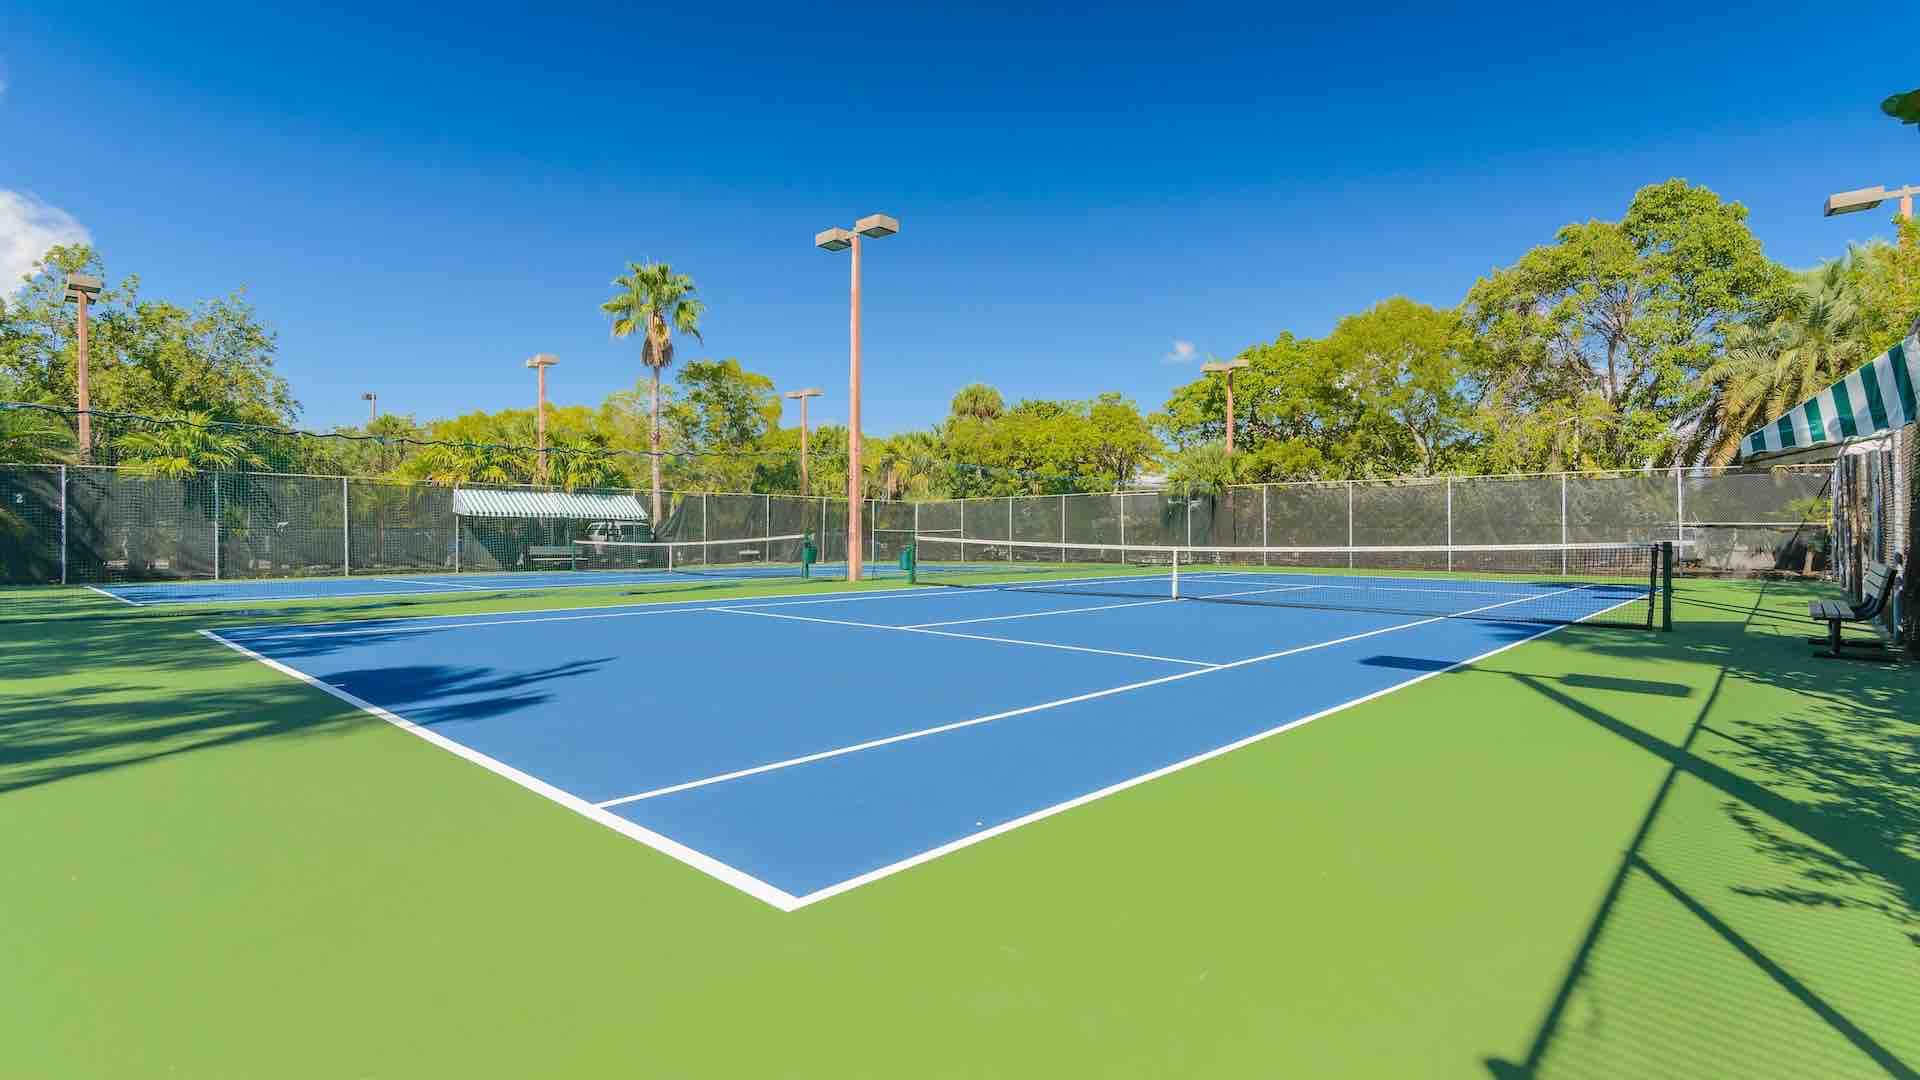 You'll have access to the clay Tennis Courts located on site...